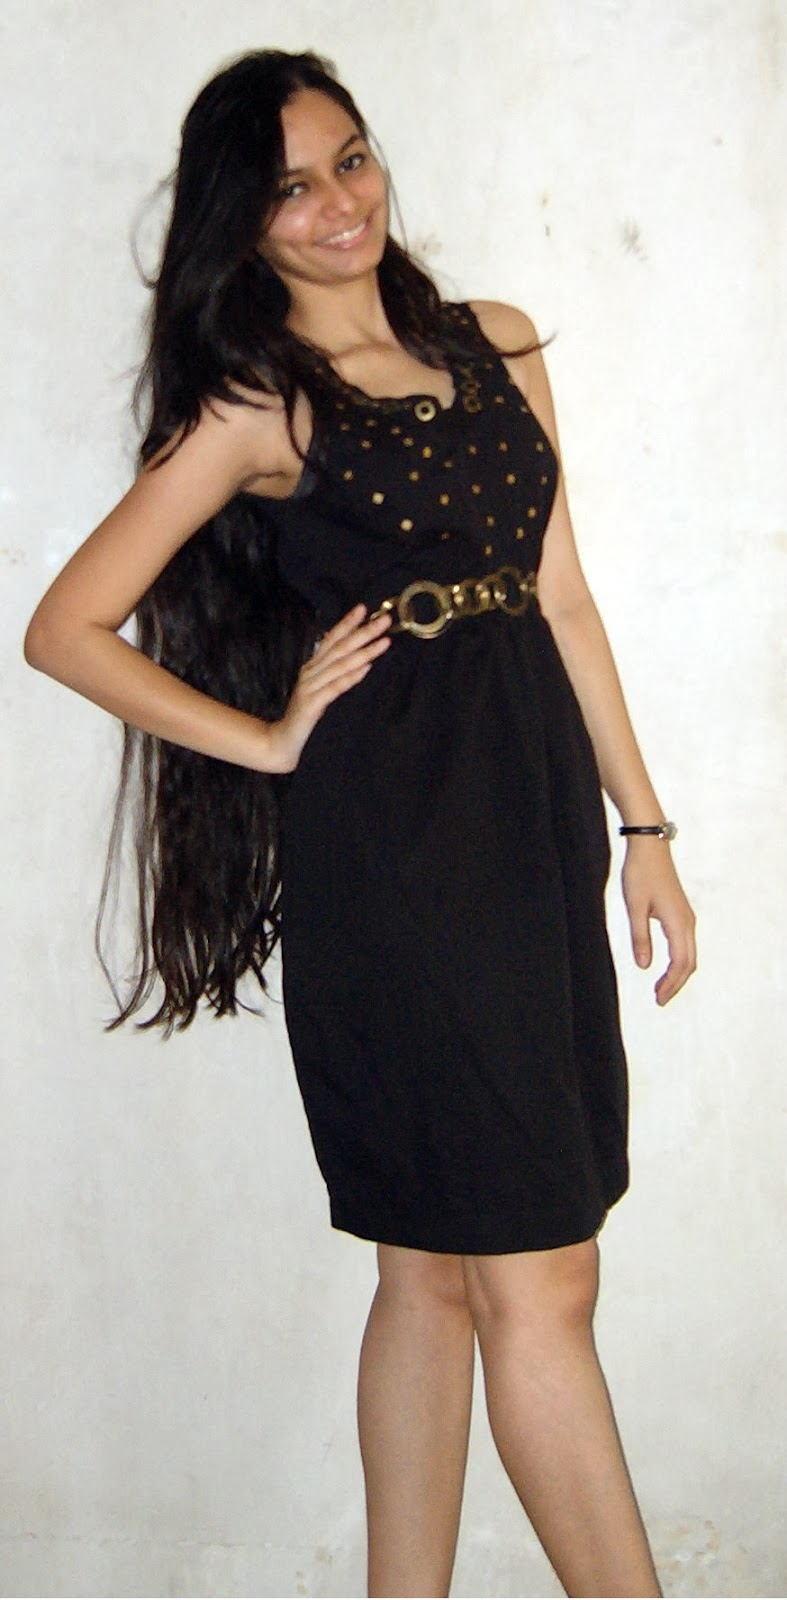 little black dress, black dress with gold, gold accessories, streetstyle, party outfit ideas